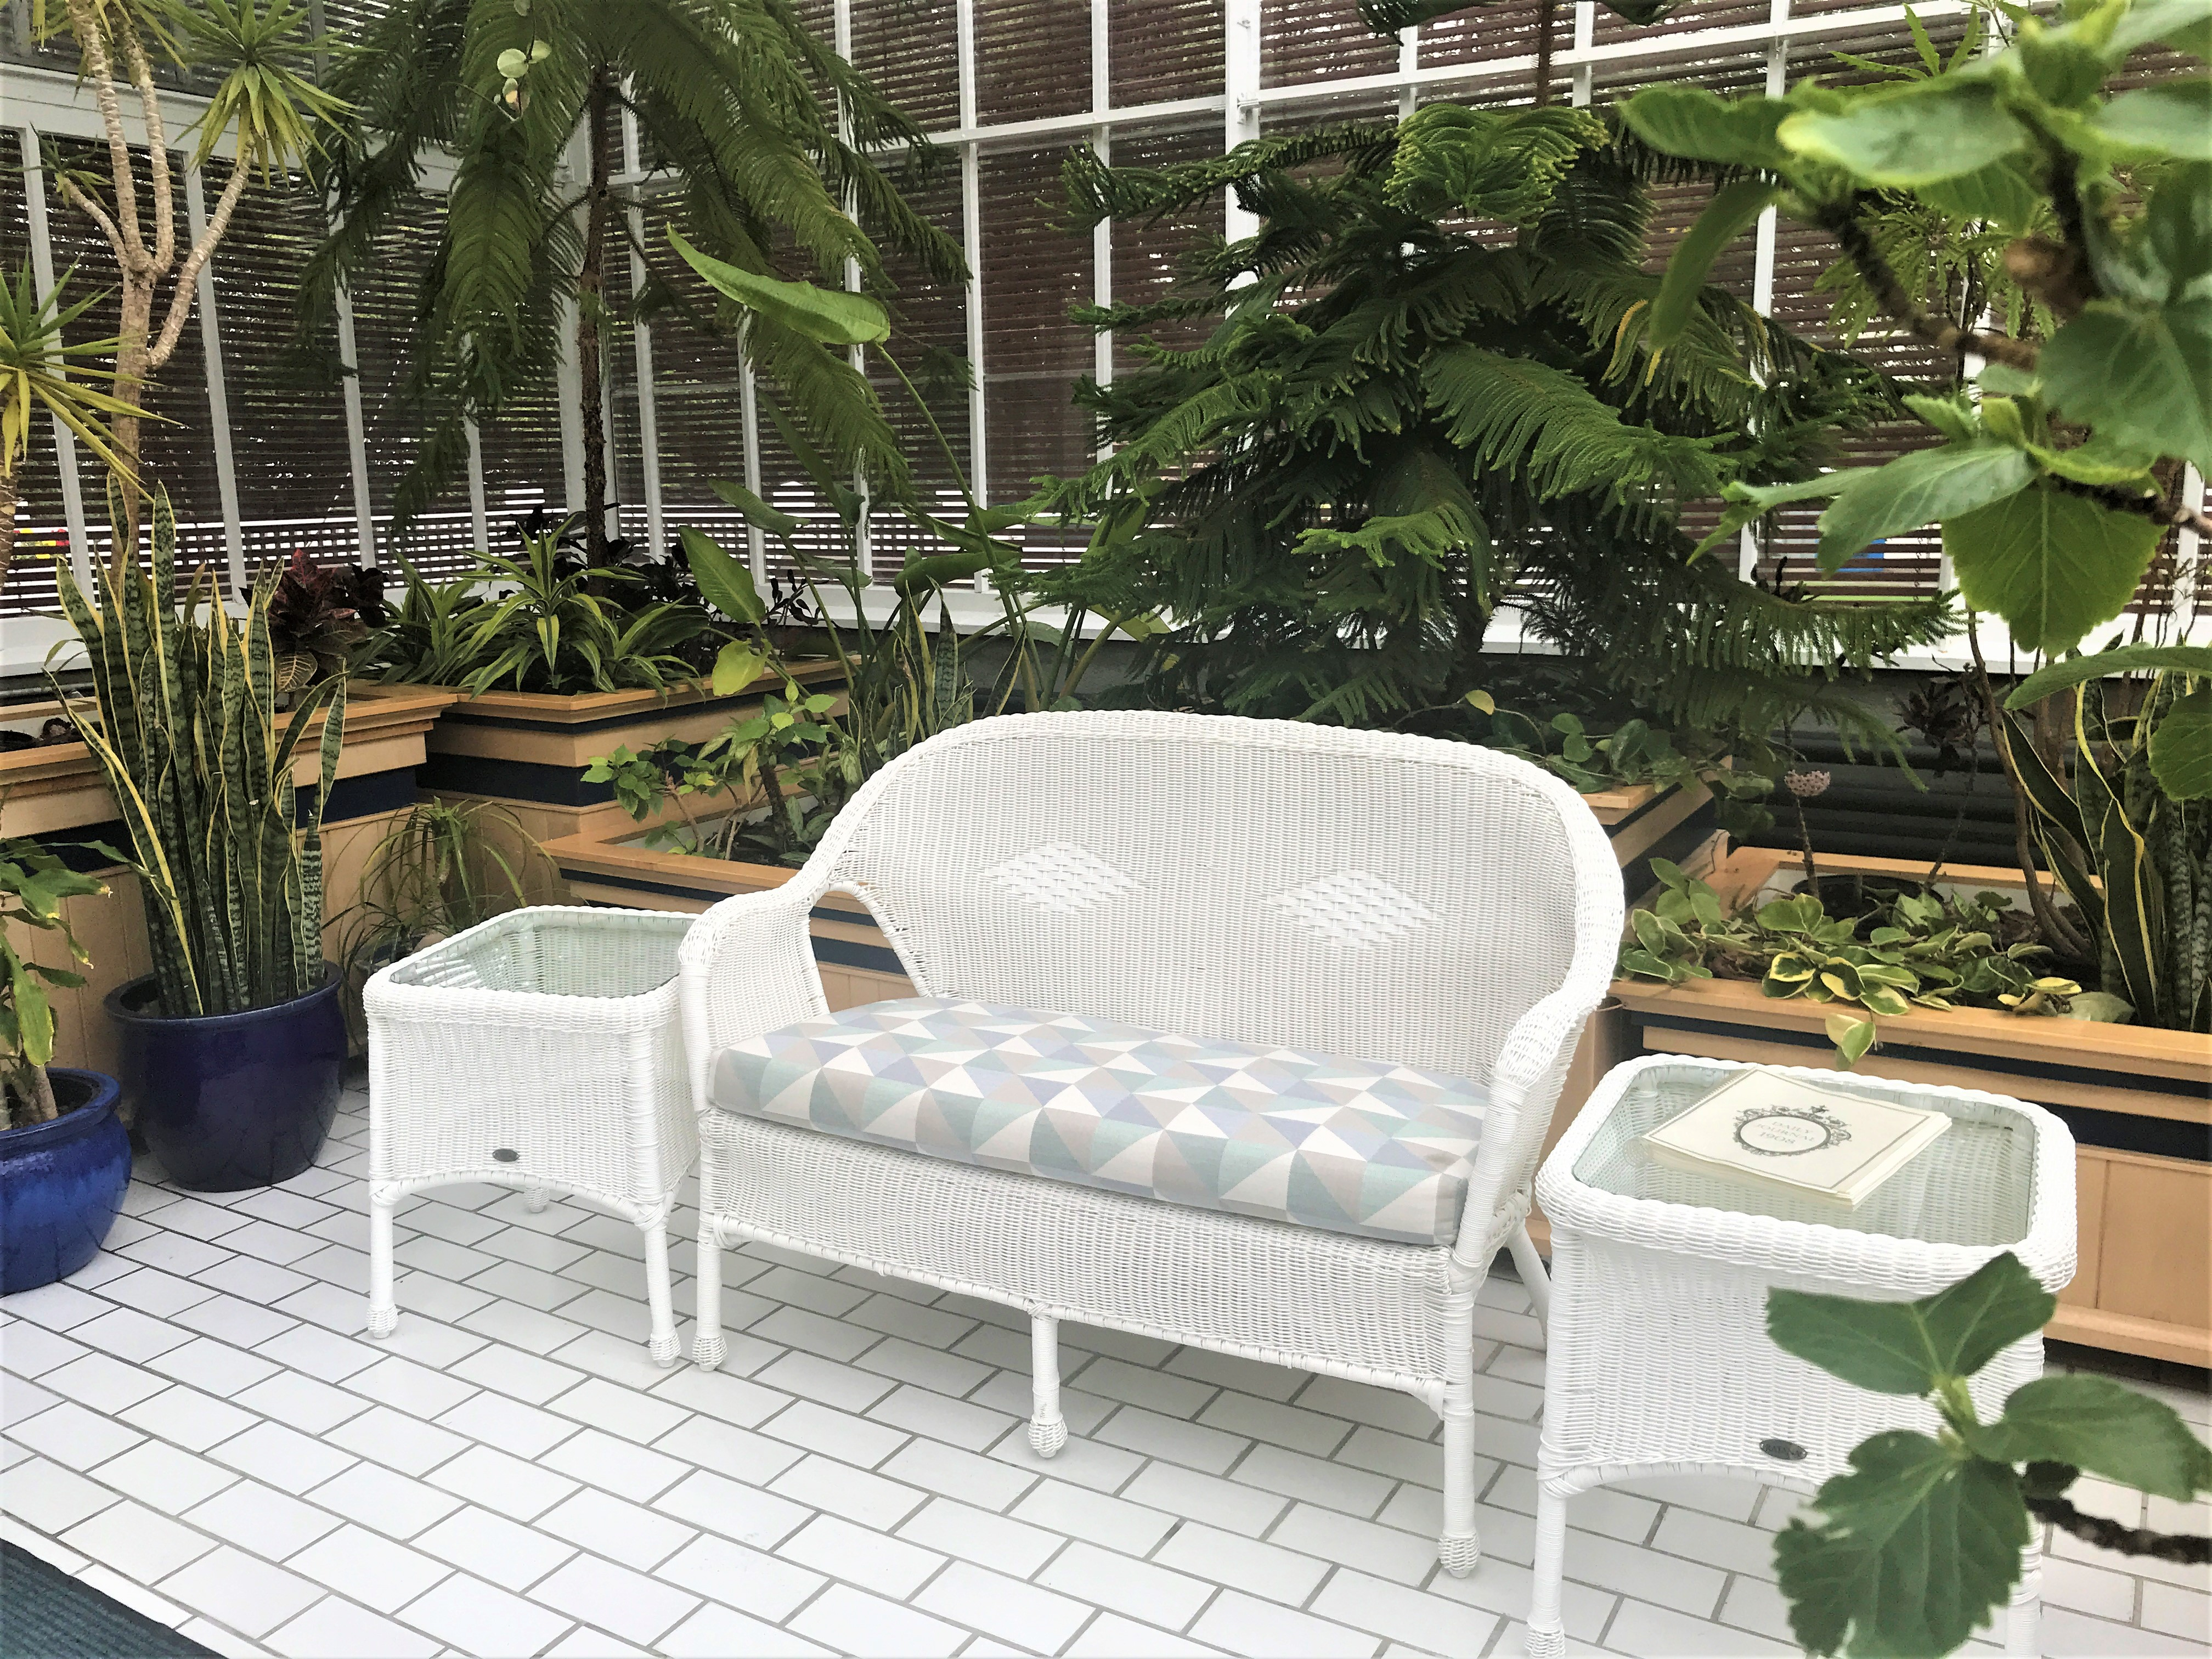 New Furniture in Conservatory